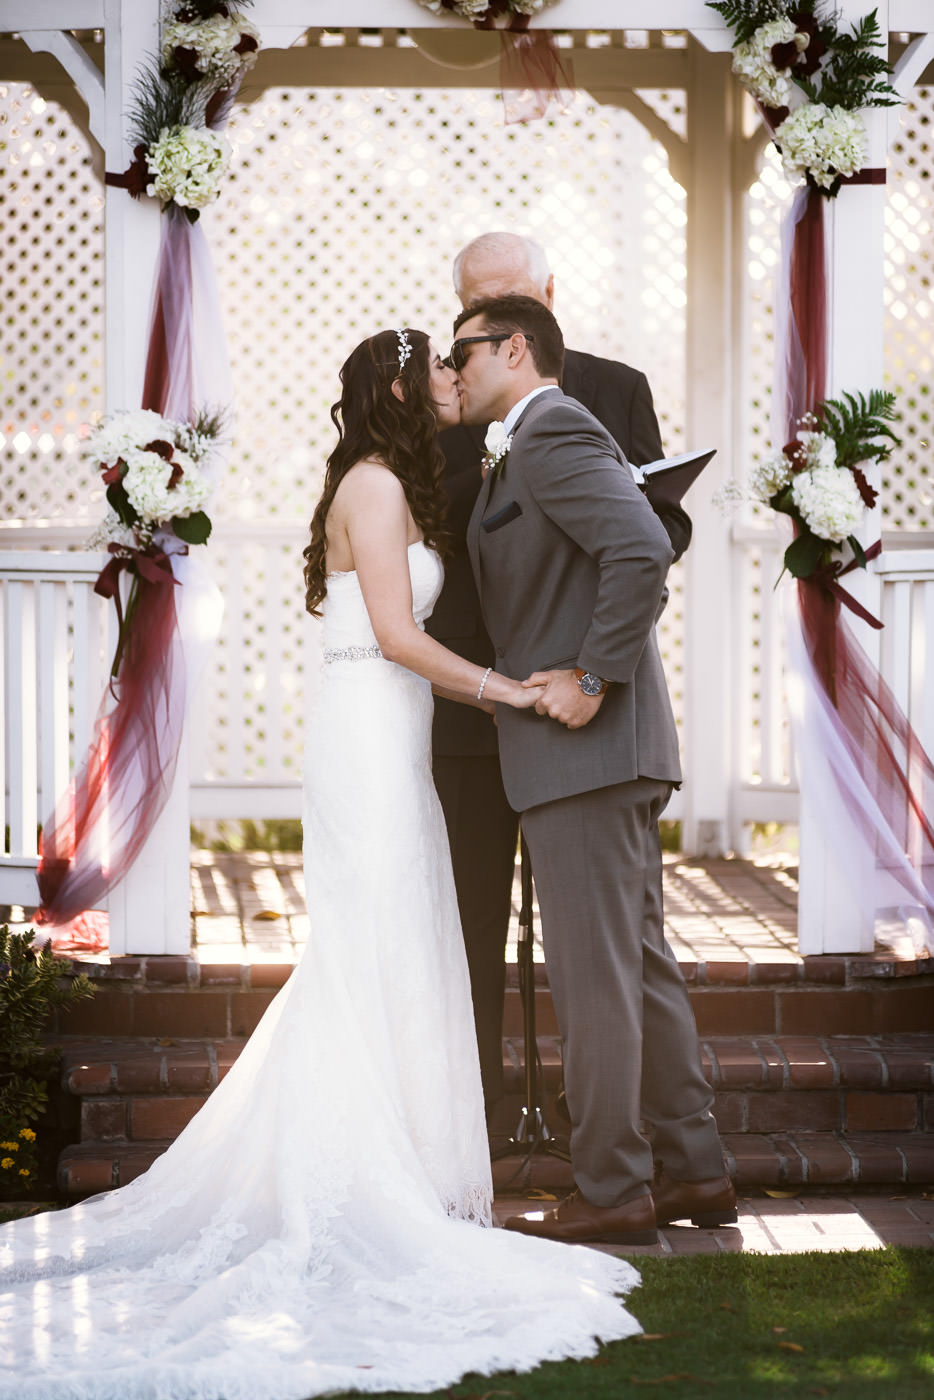 Newlyweds have their first kiss at this Alta Vista Country Club ceremony.